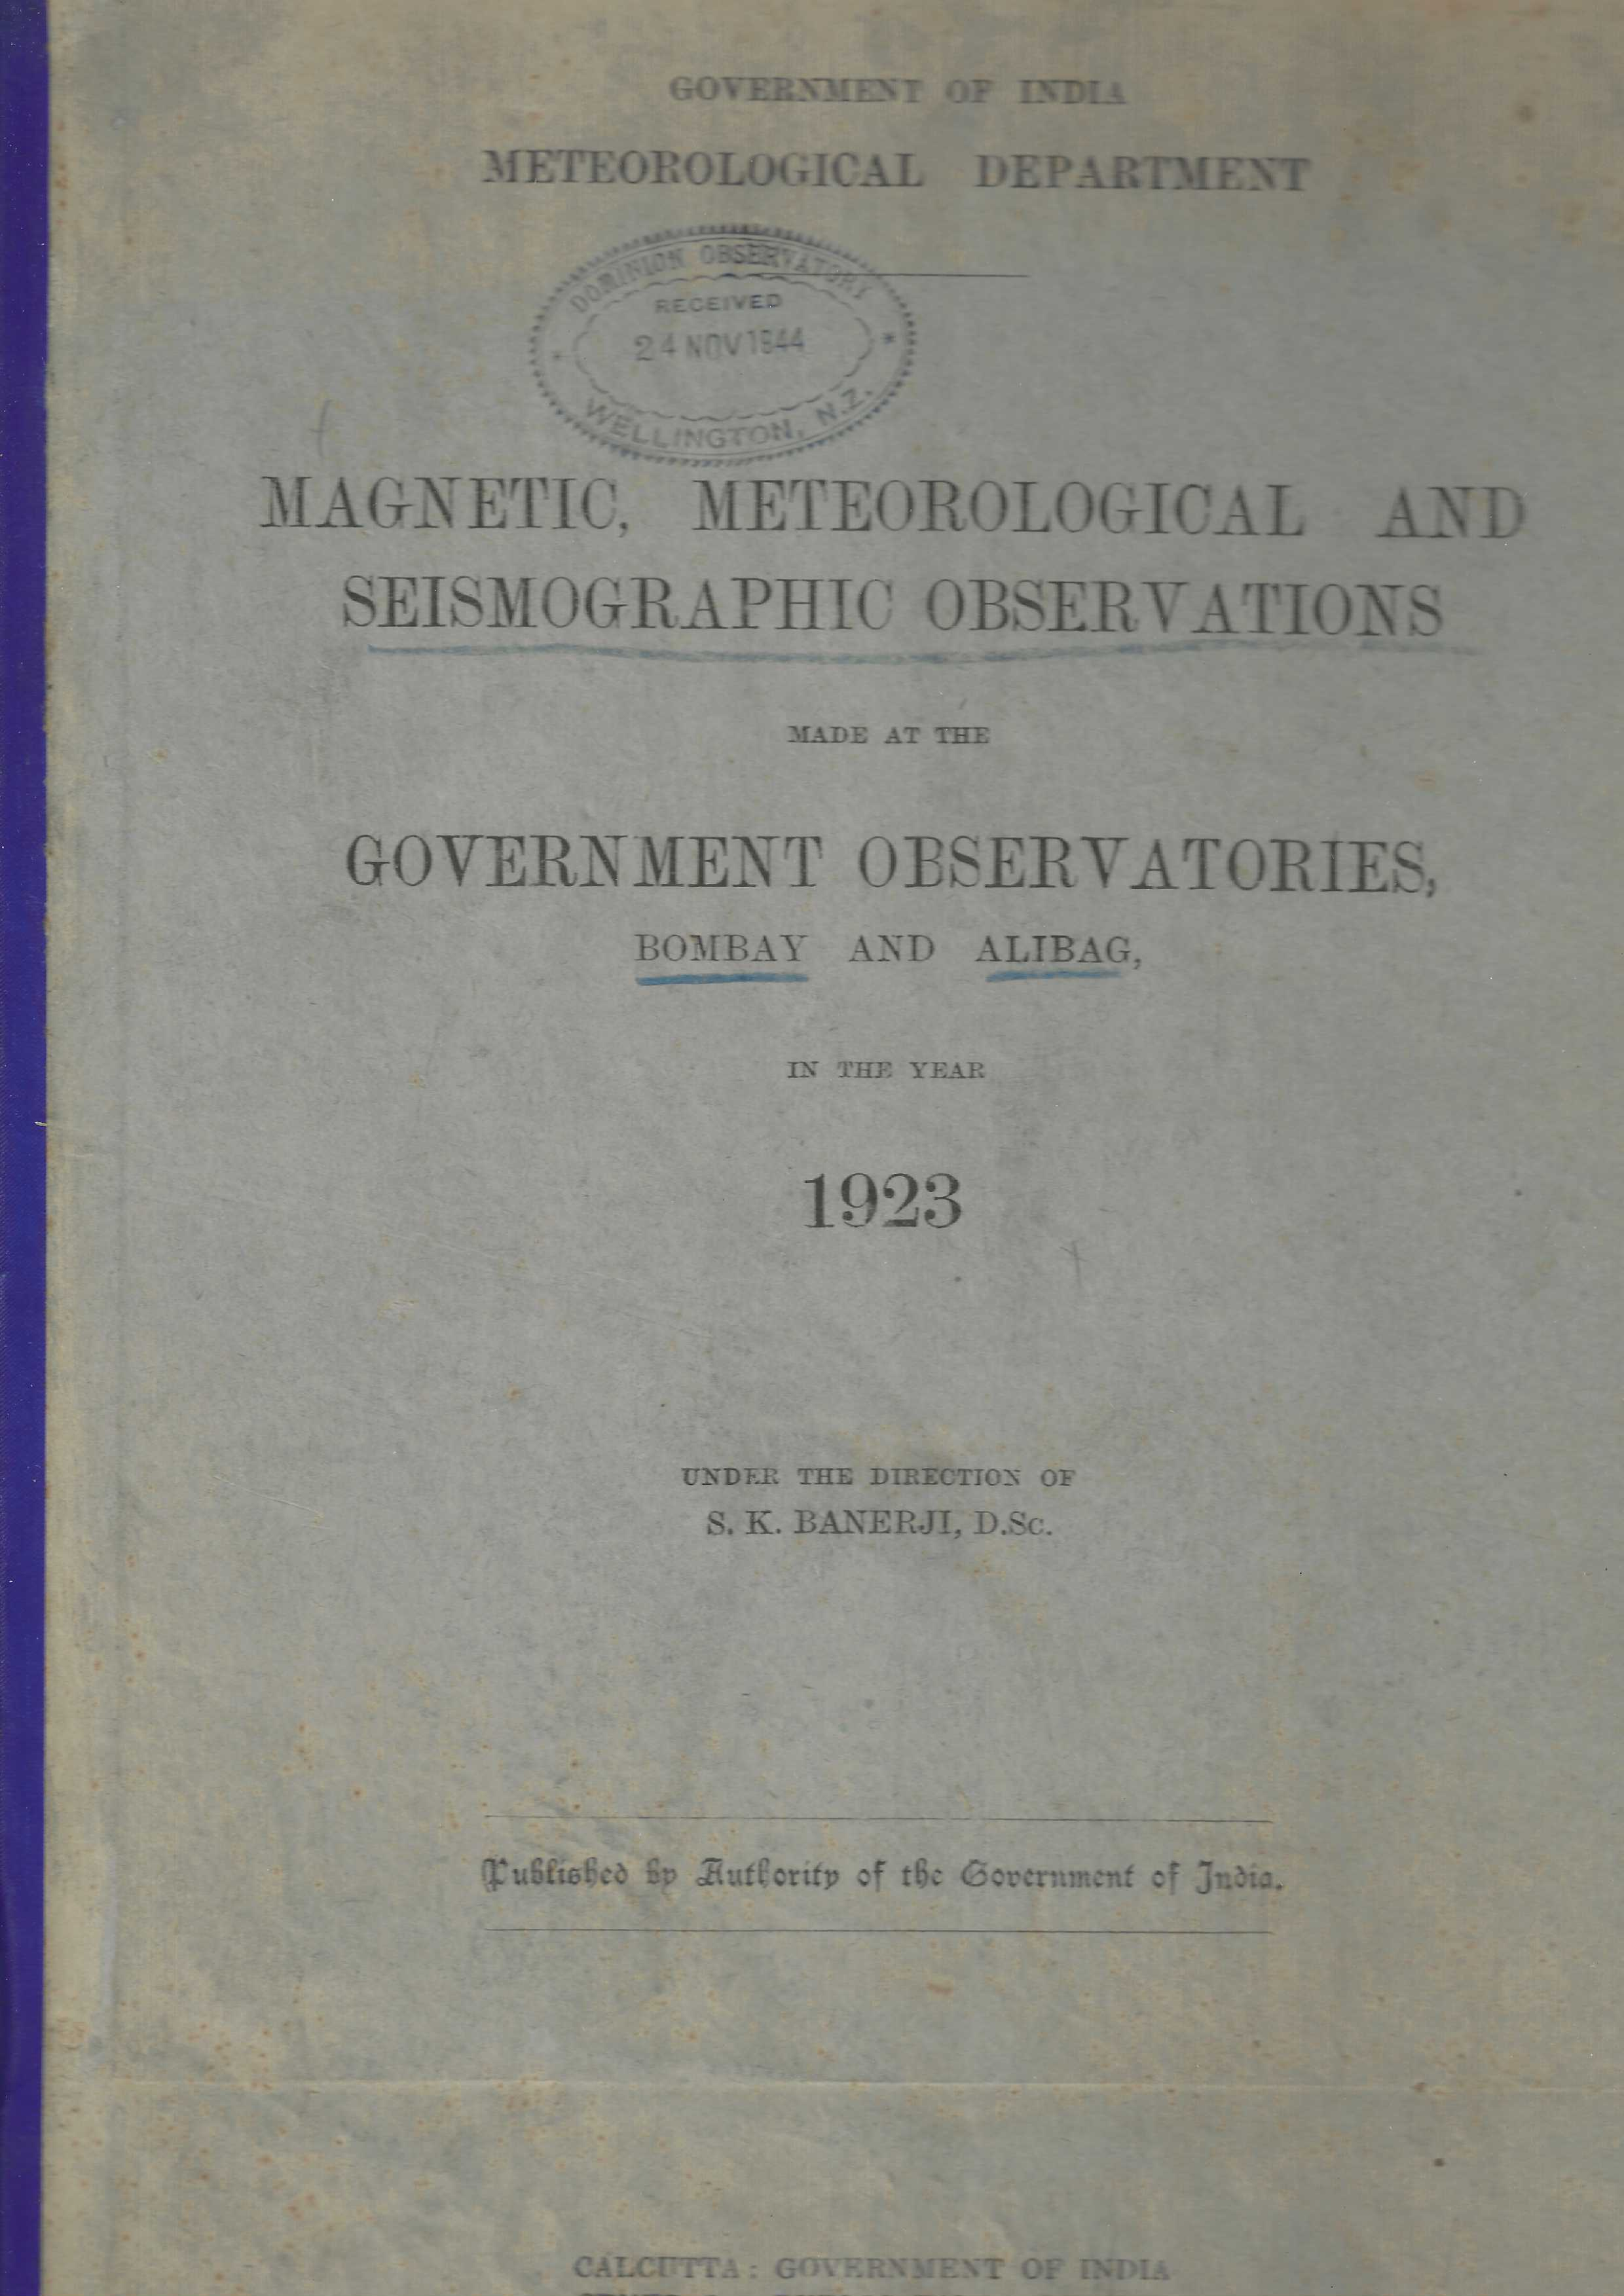 Image for Magnetic, Meteorological and Seismographic Observations made at the Government Observatories, Bombay and Alibag, in the Year 1923.